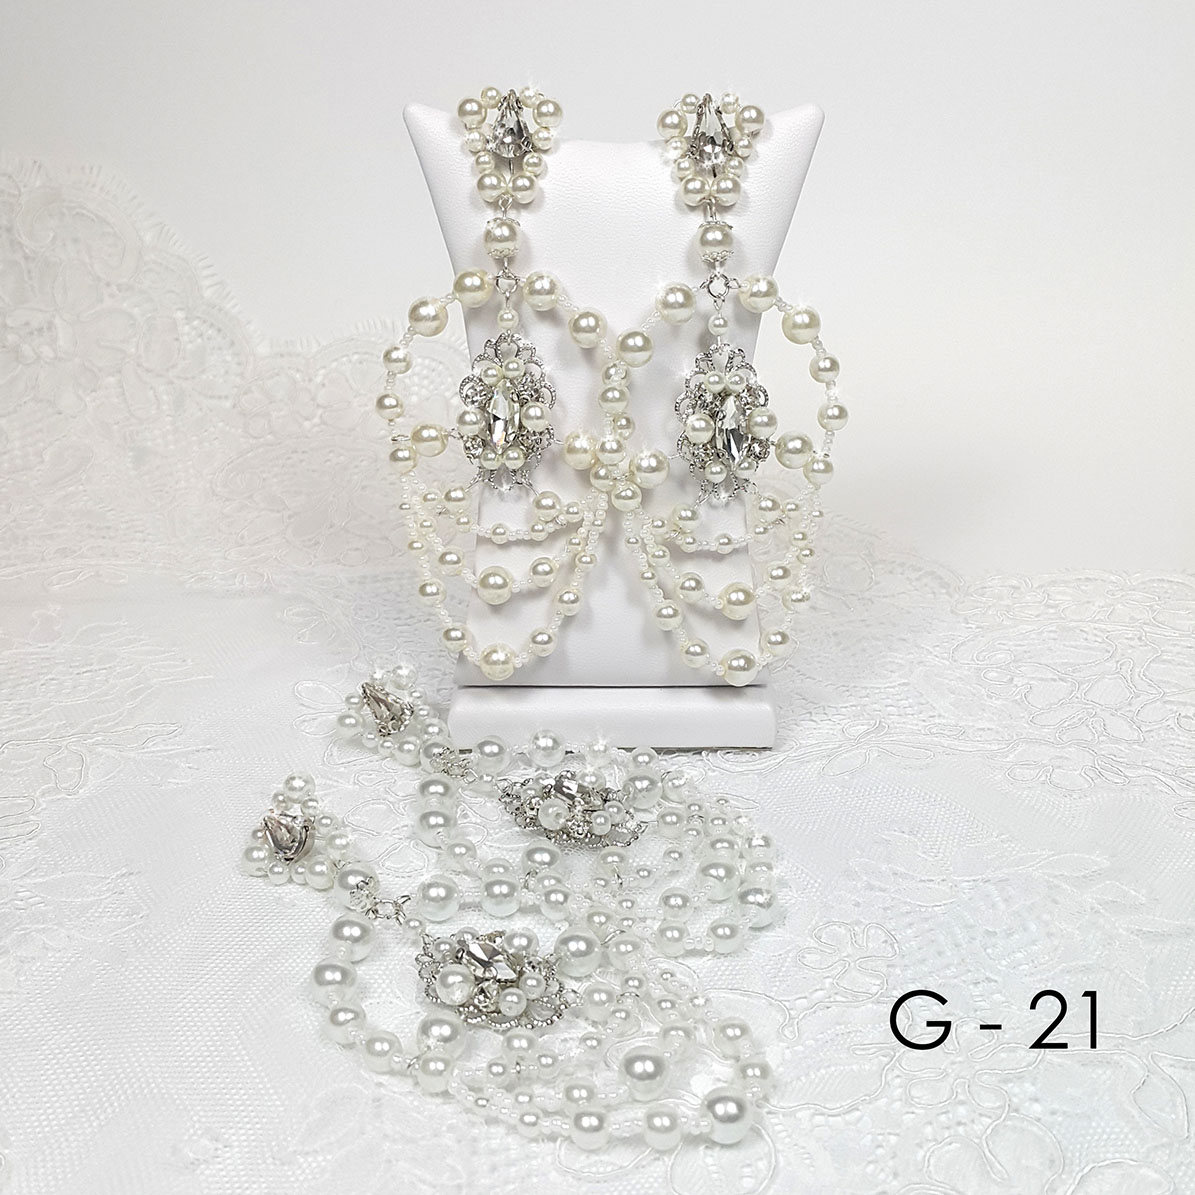 Accessory G 21 for the bride Foto 1